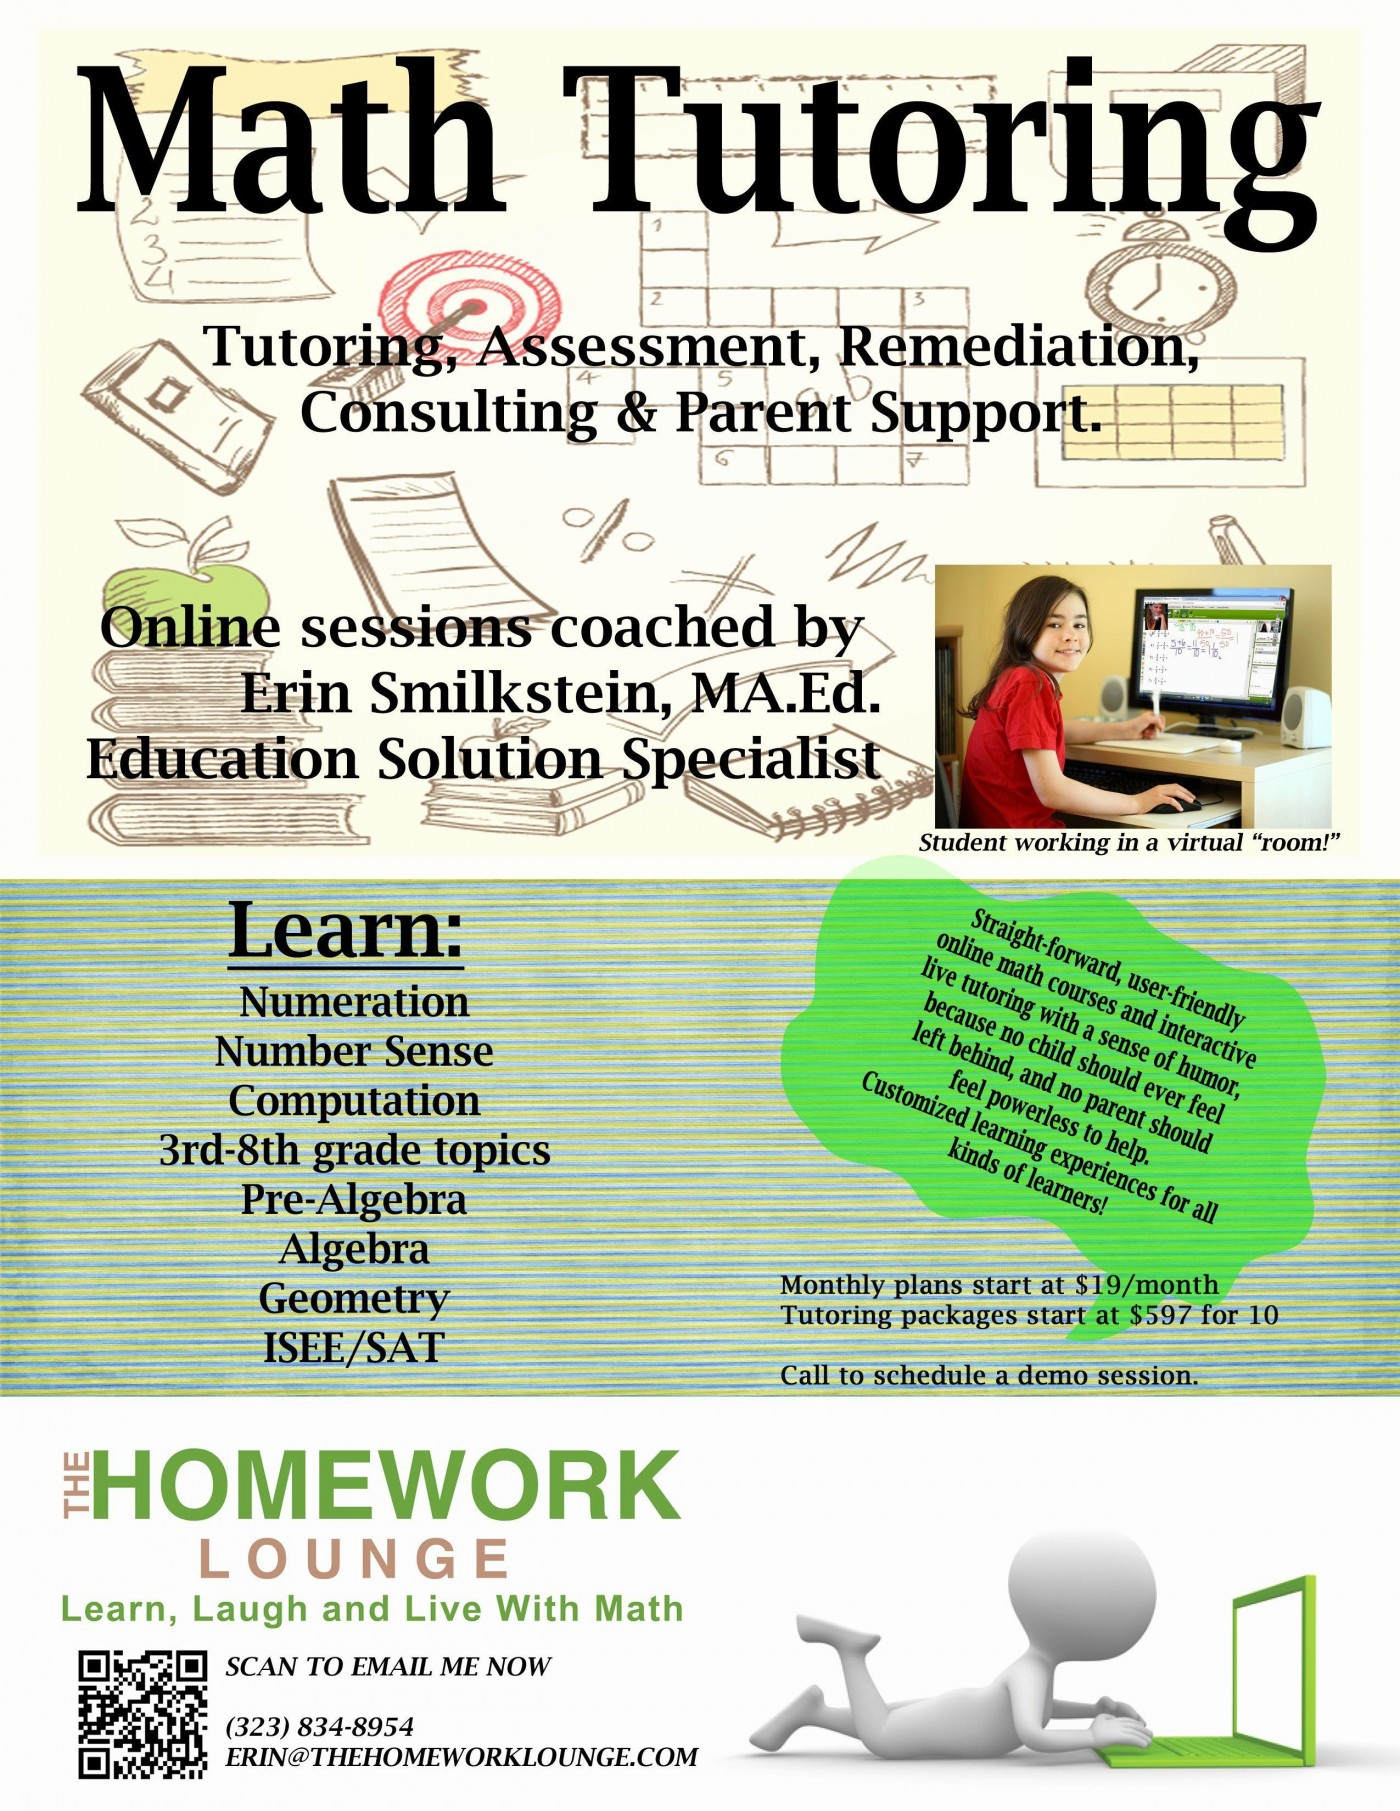 001 Wondrou Tutoring Flyer Template Free Photo  Word1400